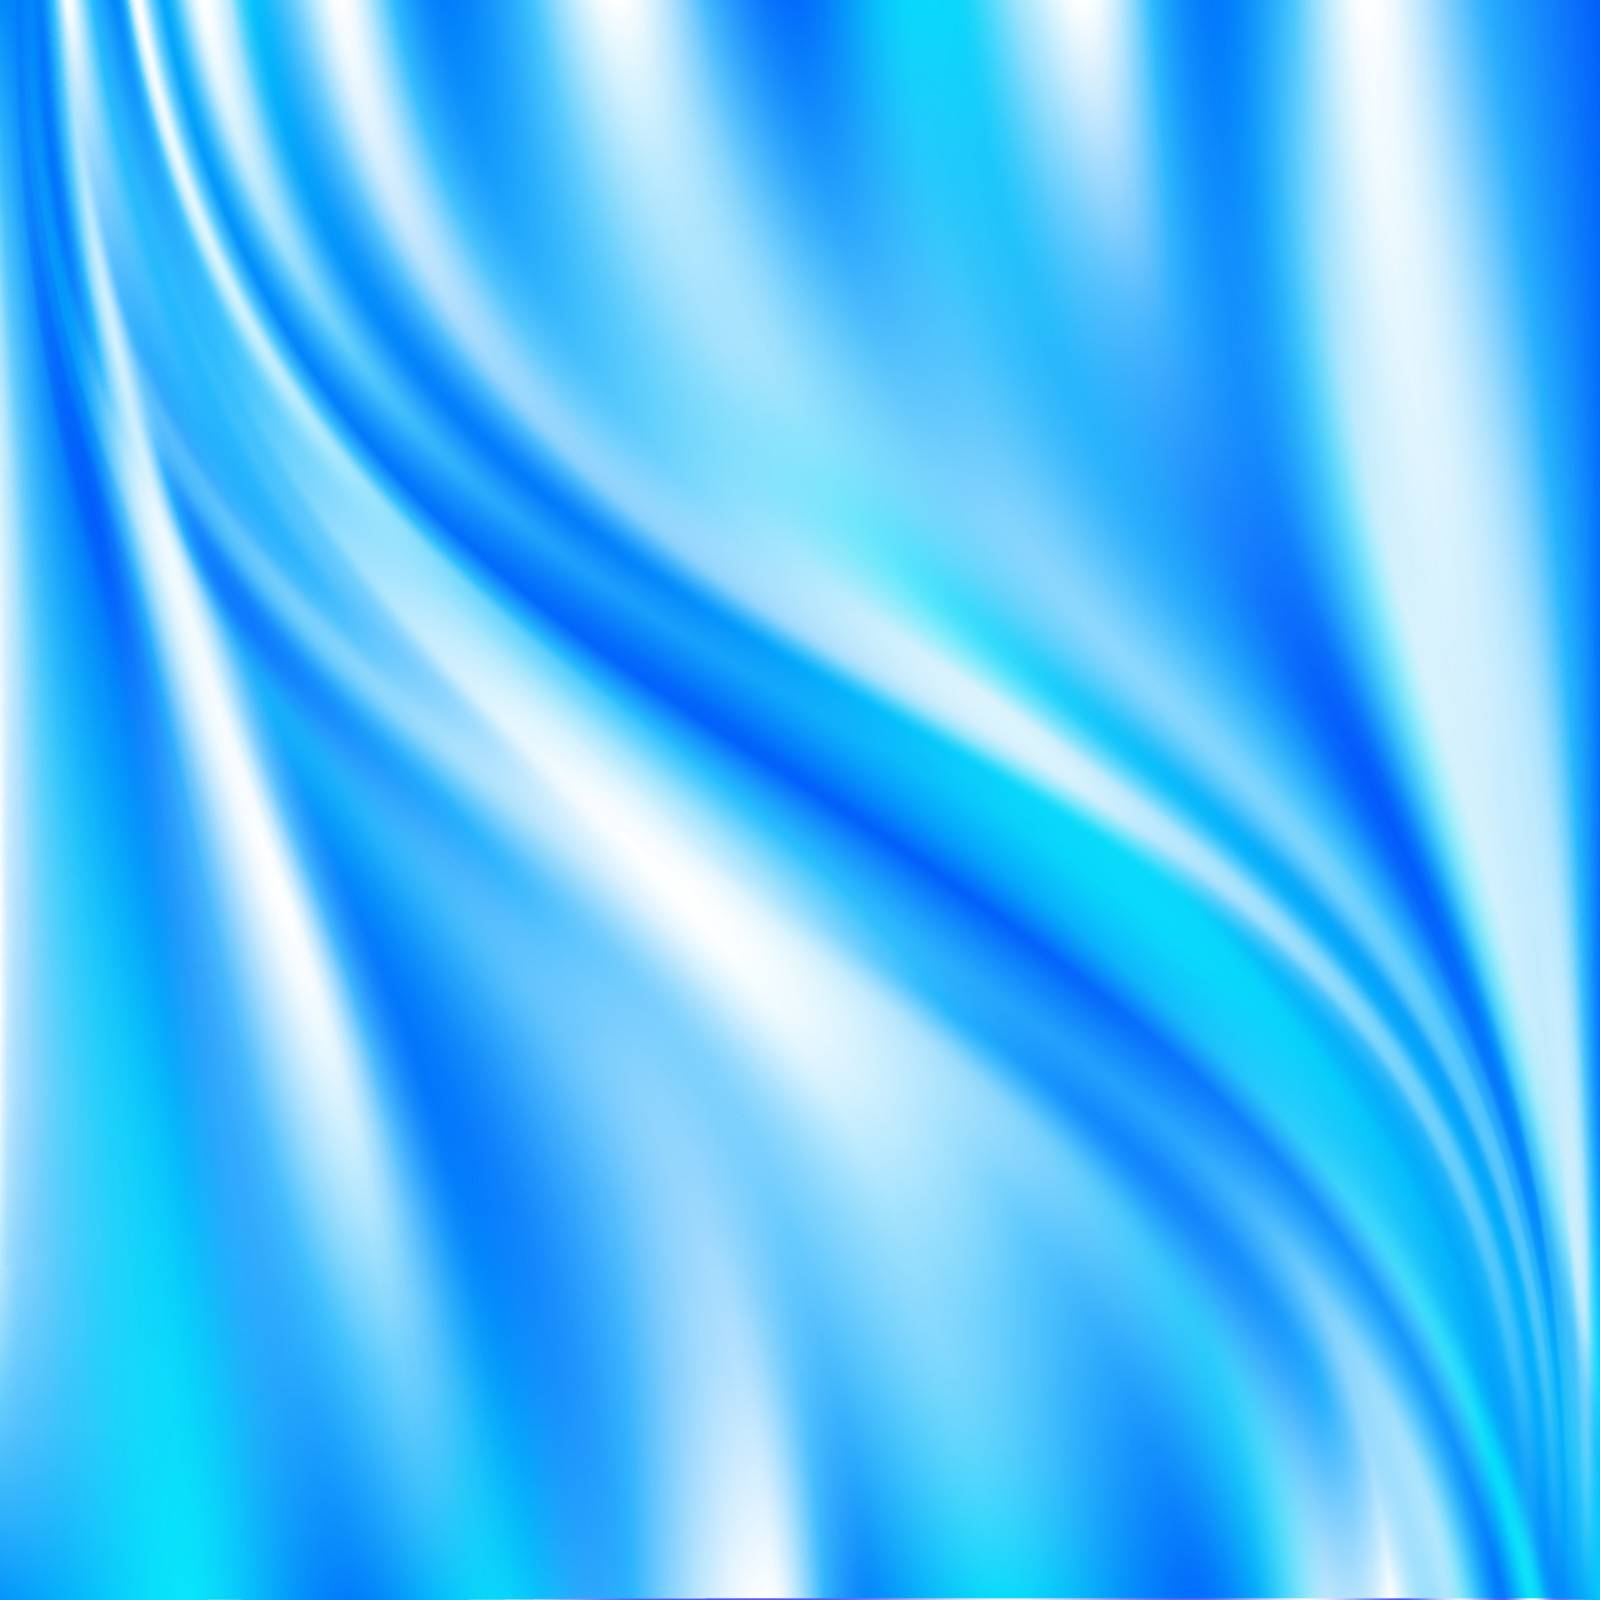 abstract blue drapery background